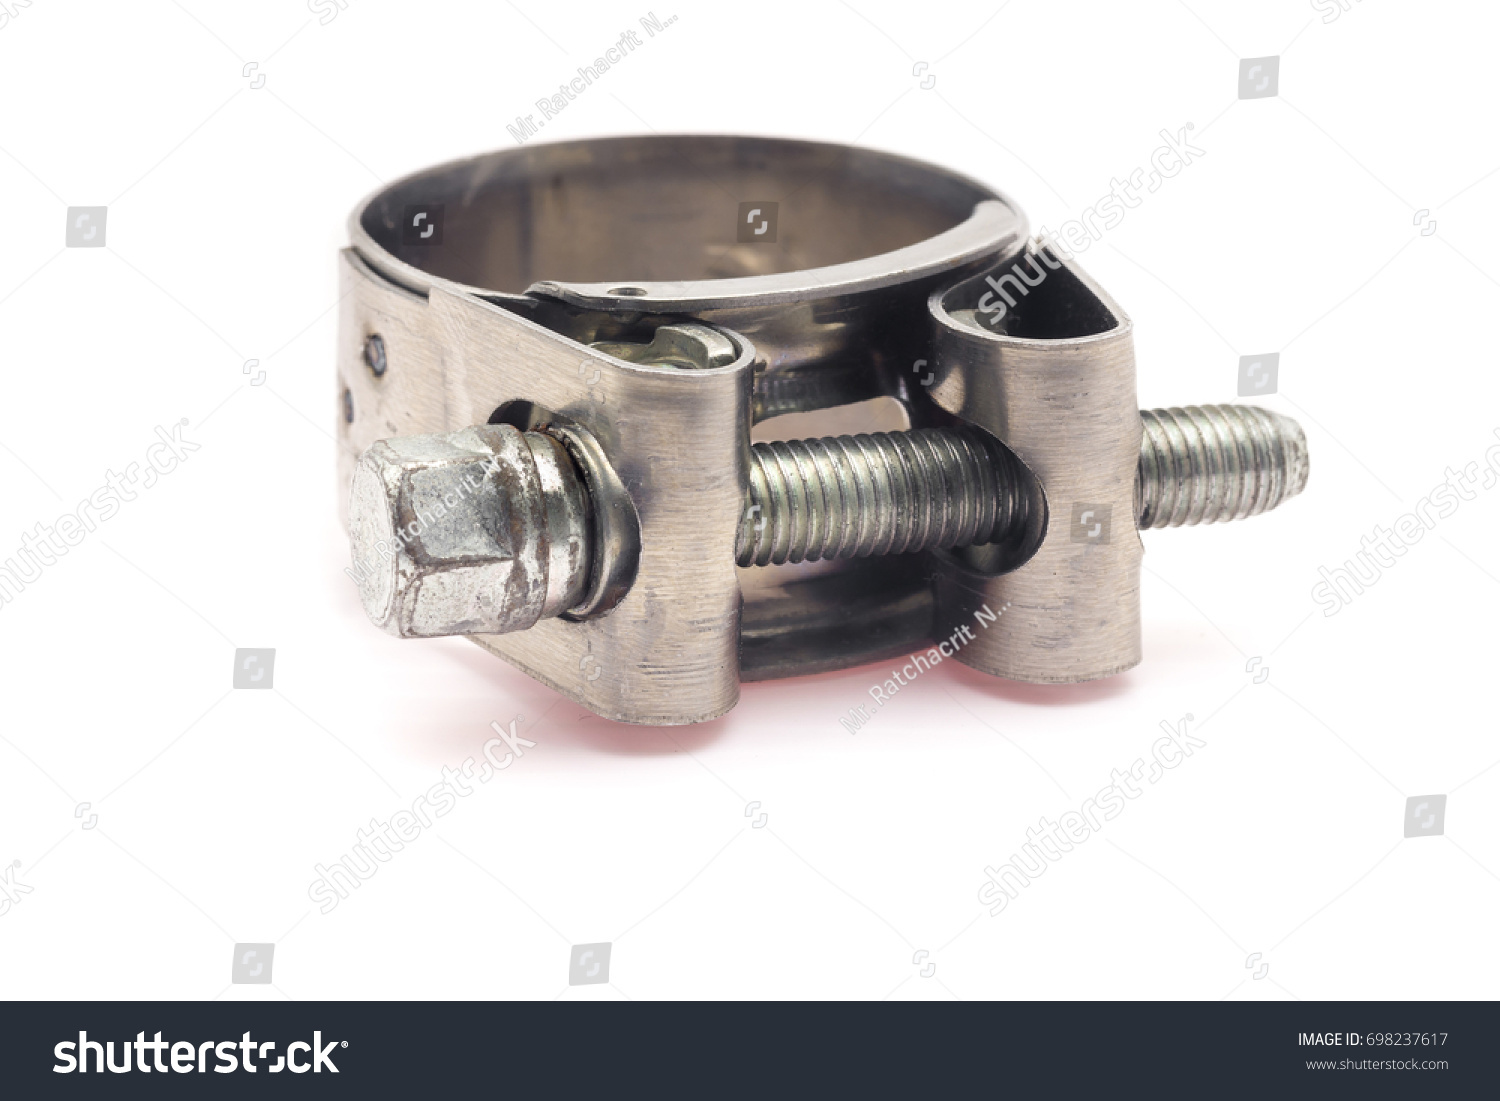 Close up a big hose cl& on white background.  sc 1 st  Shutterstock & Close Big Hose Clamp On White Stock Photo (Royalty Free) 698237617 ...